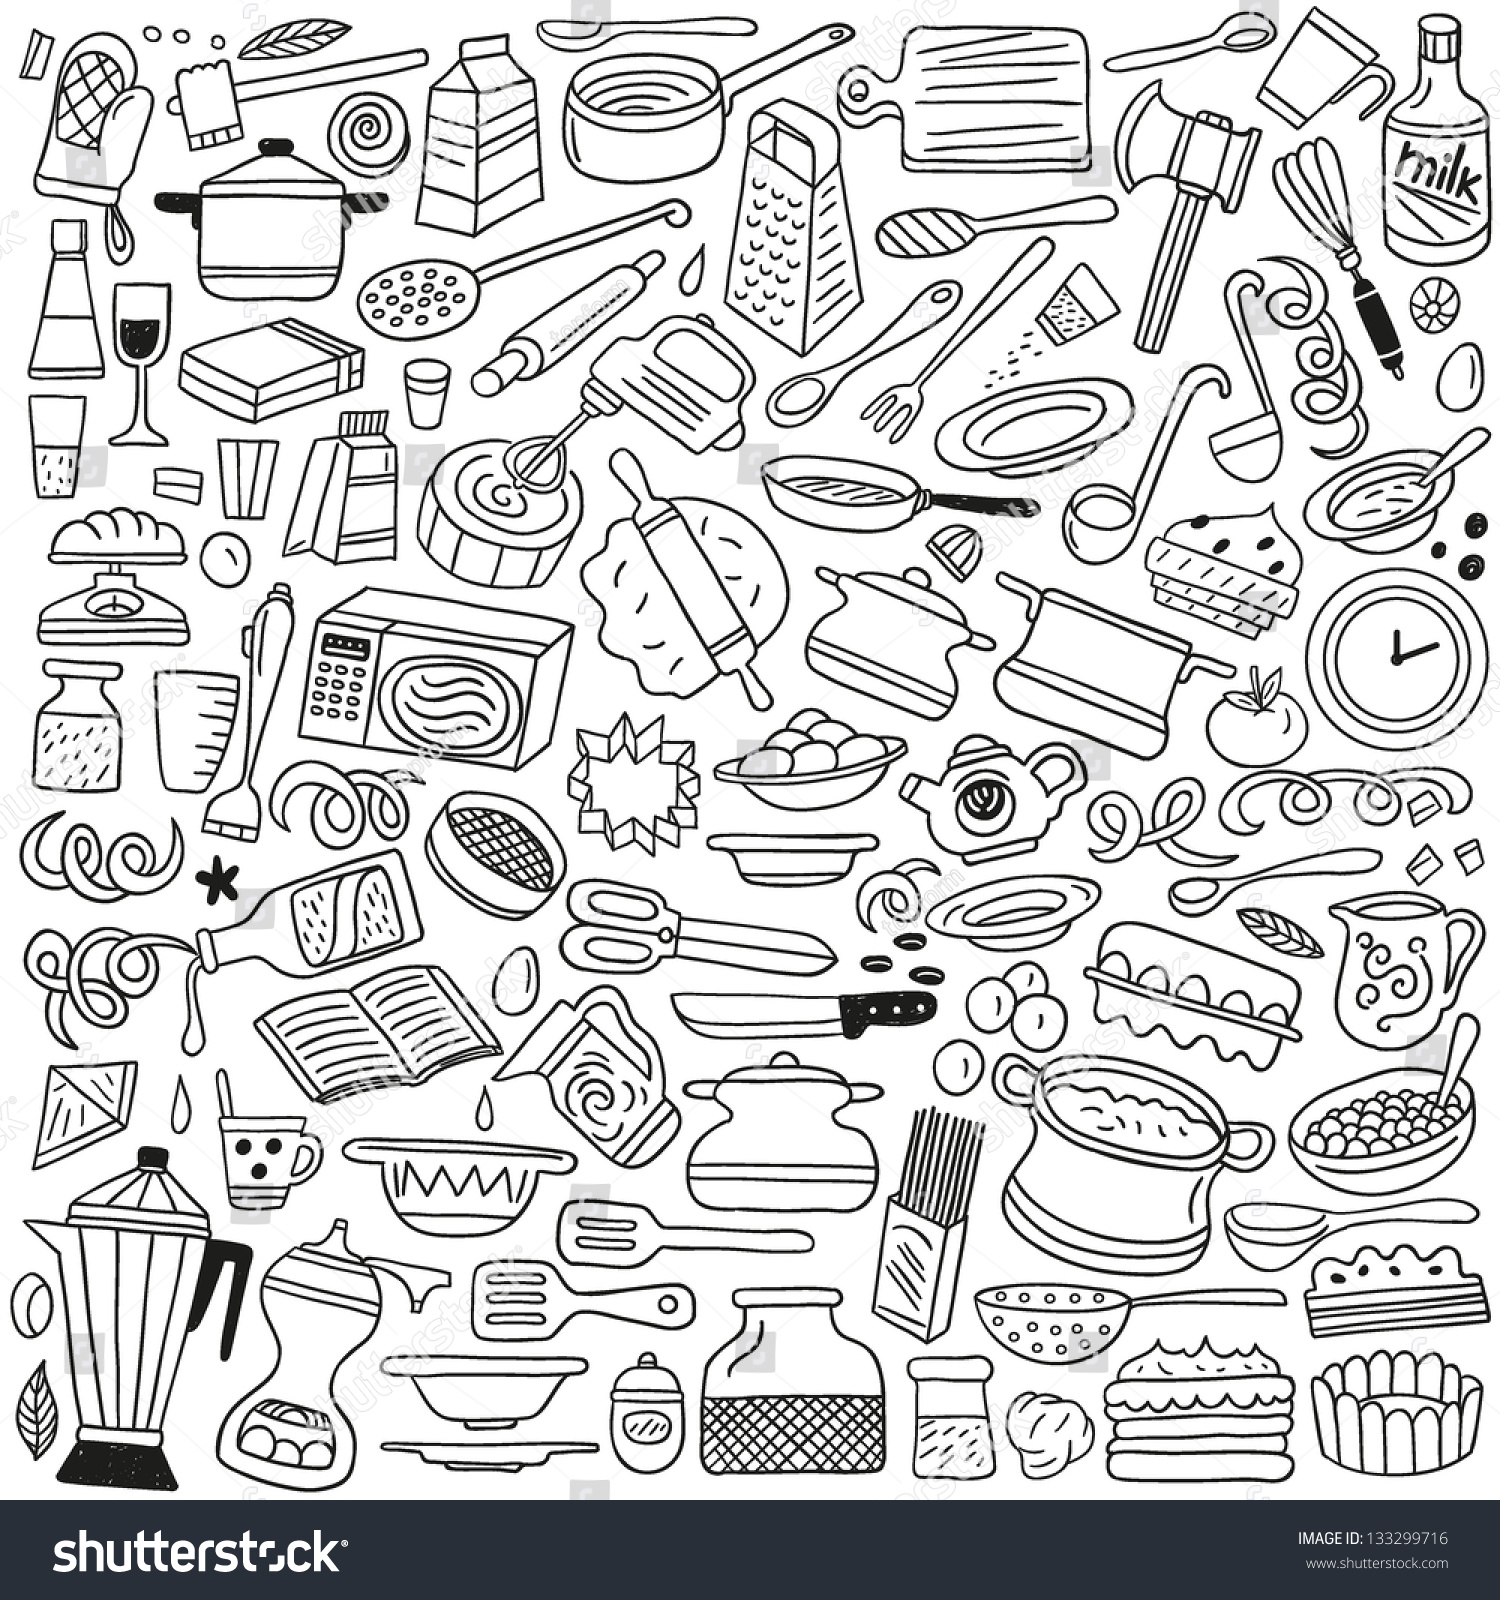 Kitchen tools drawing - Cookery Kitchen Tools Doodles